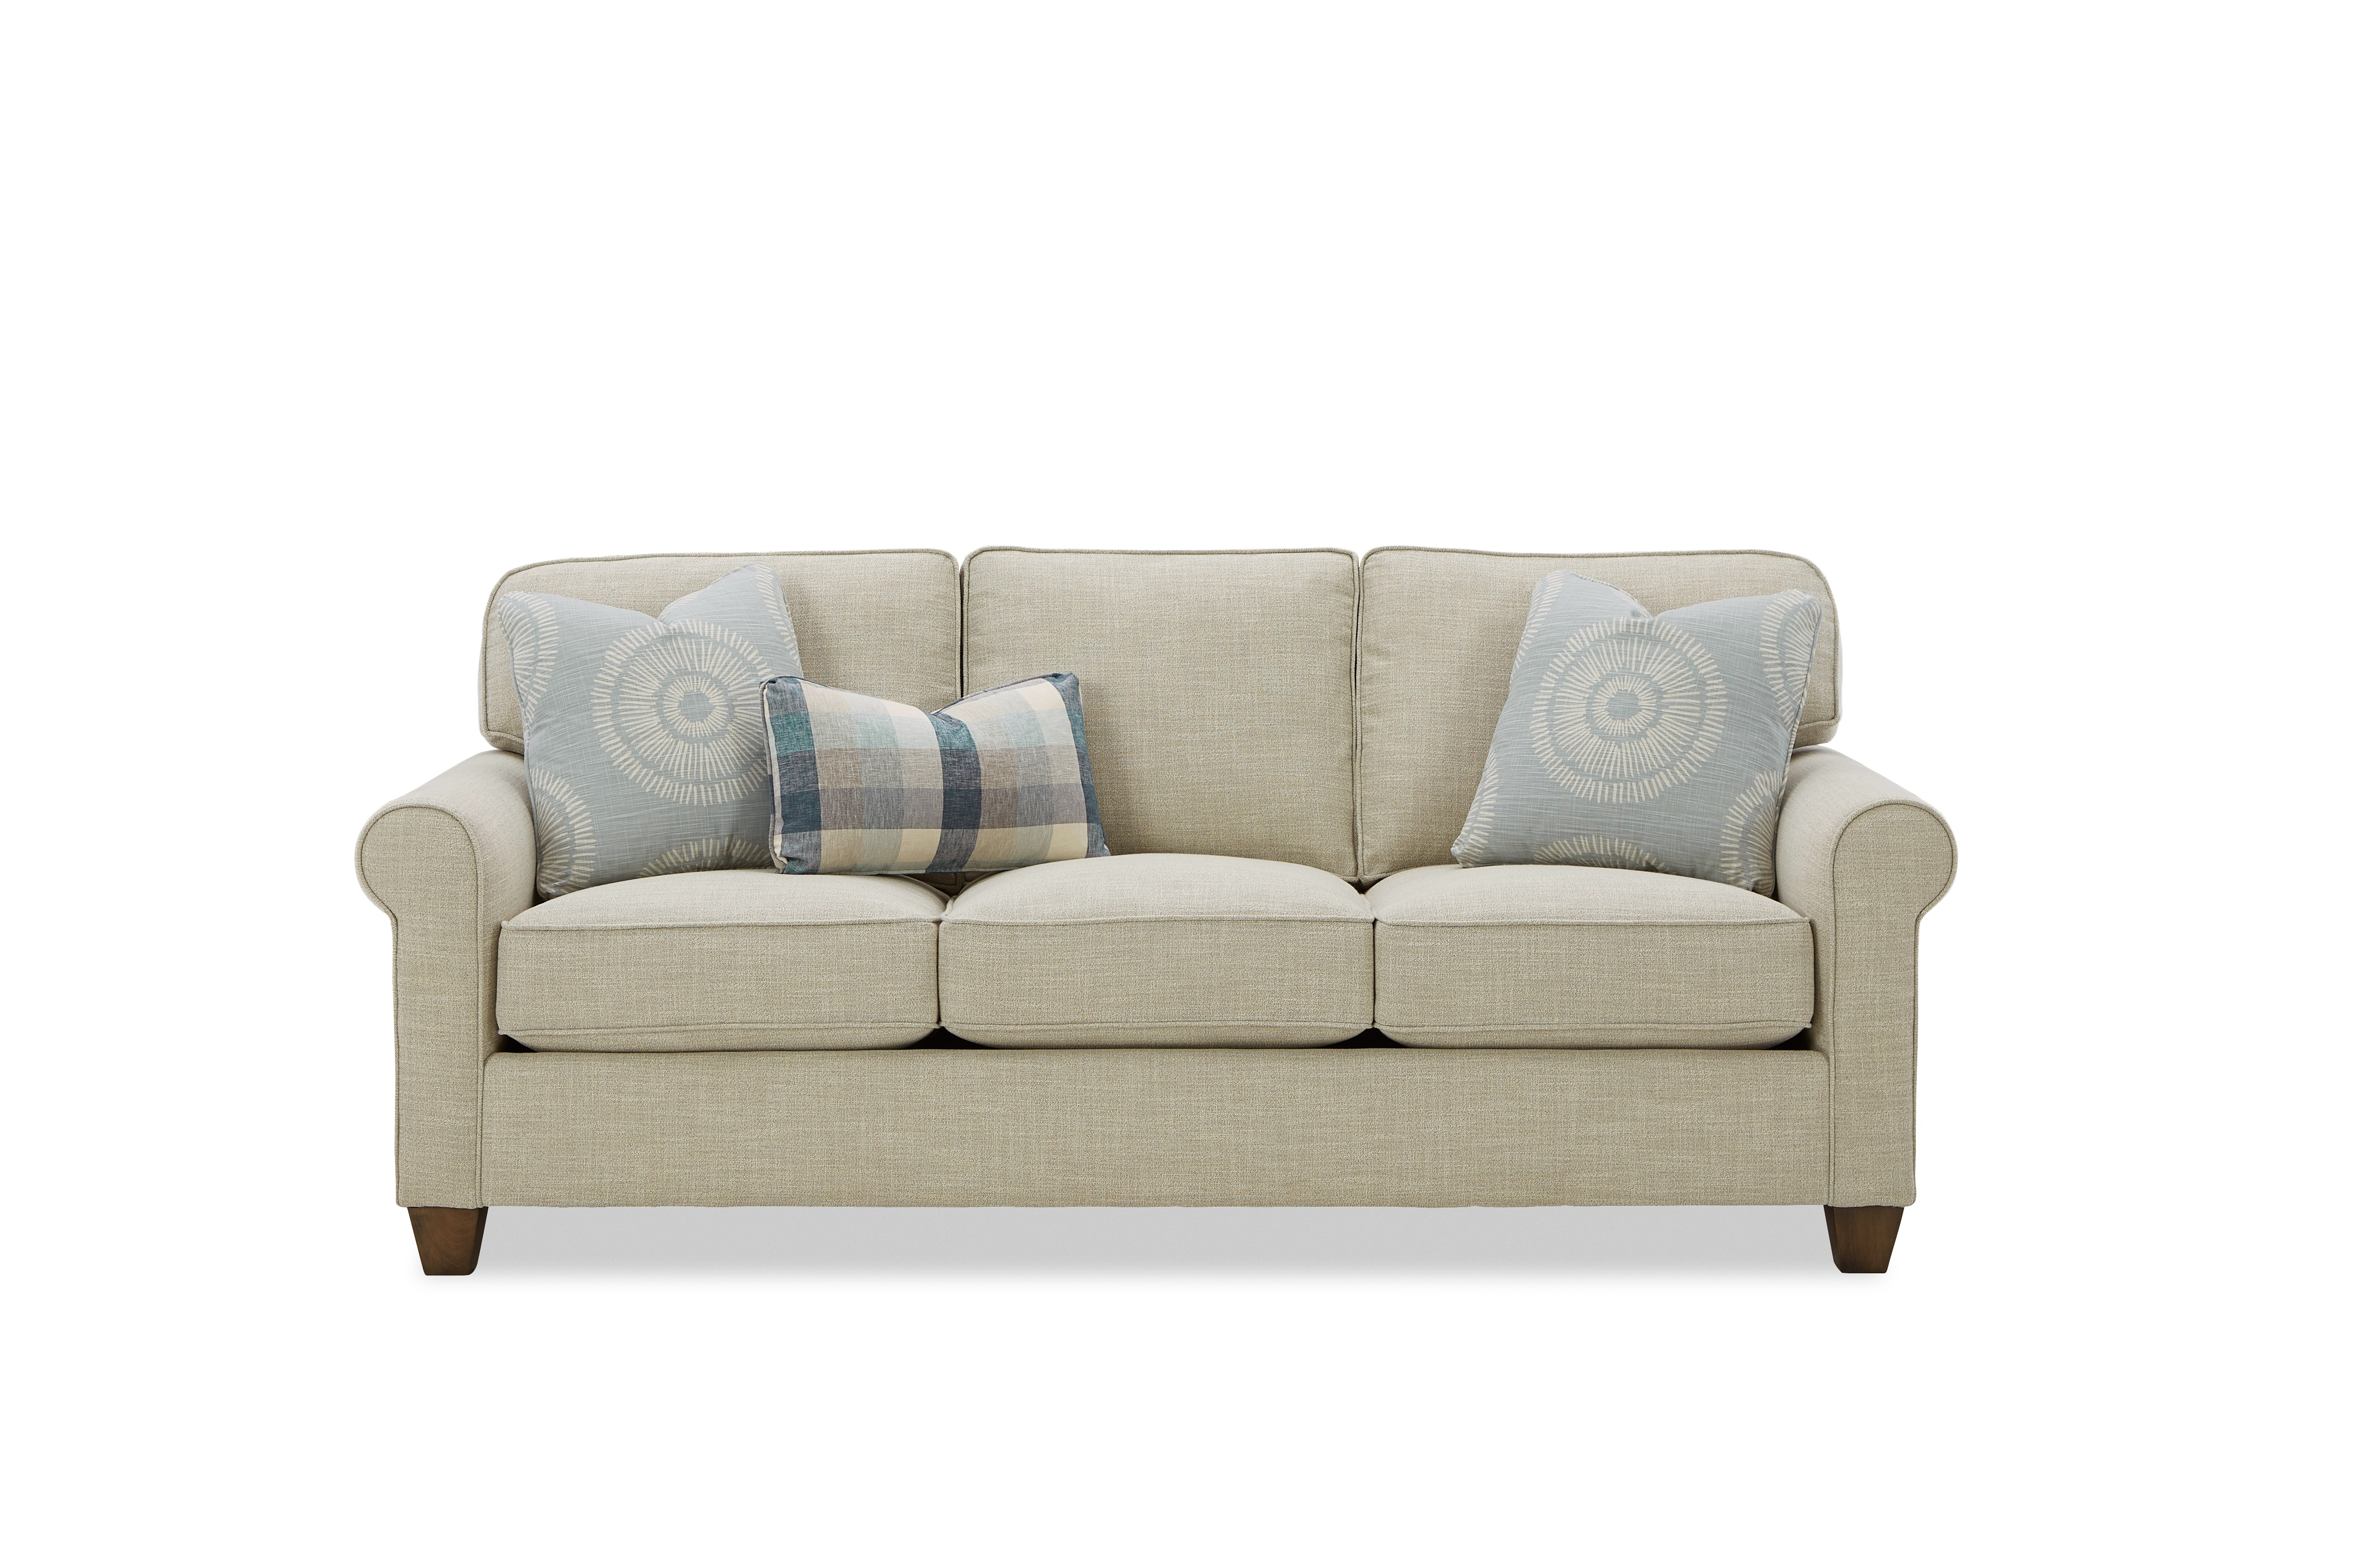 717450 3-Seat Sofa by Hickory Craft at Godby Home Furnishings